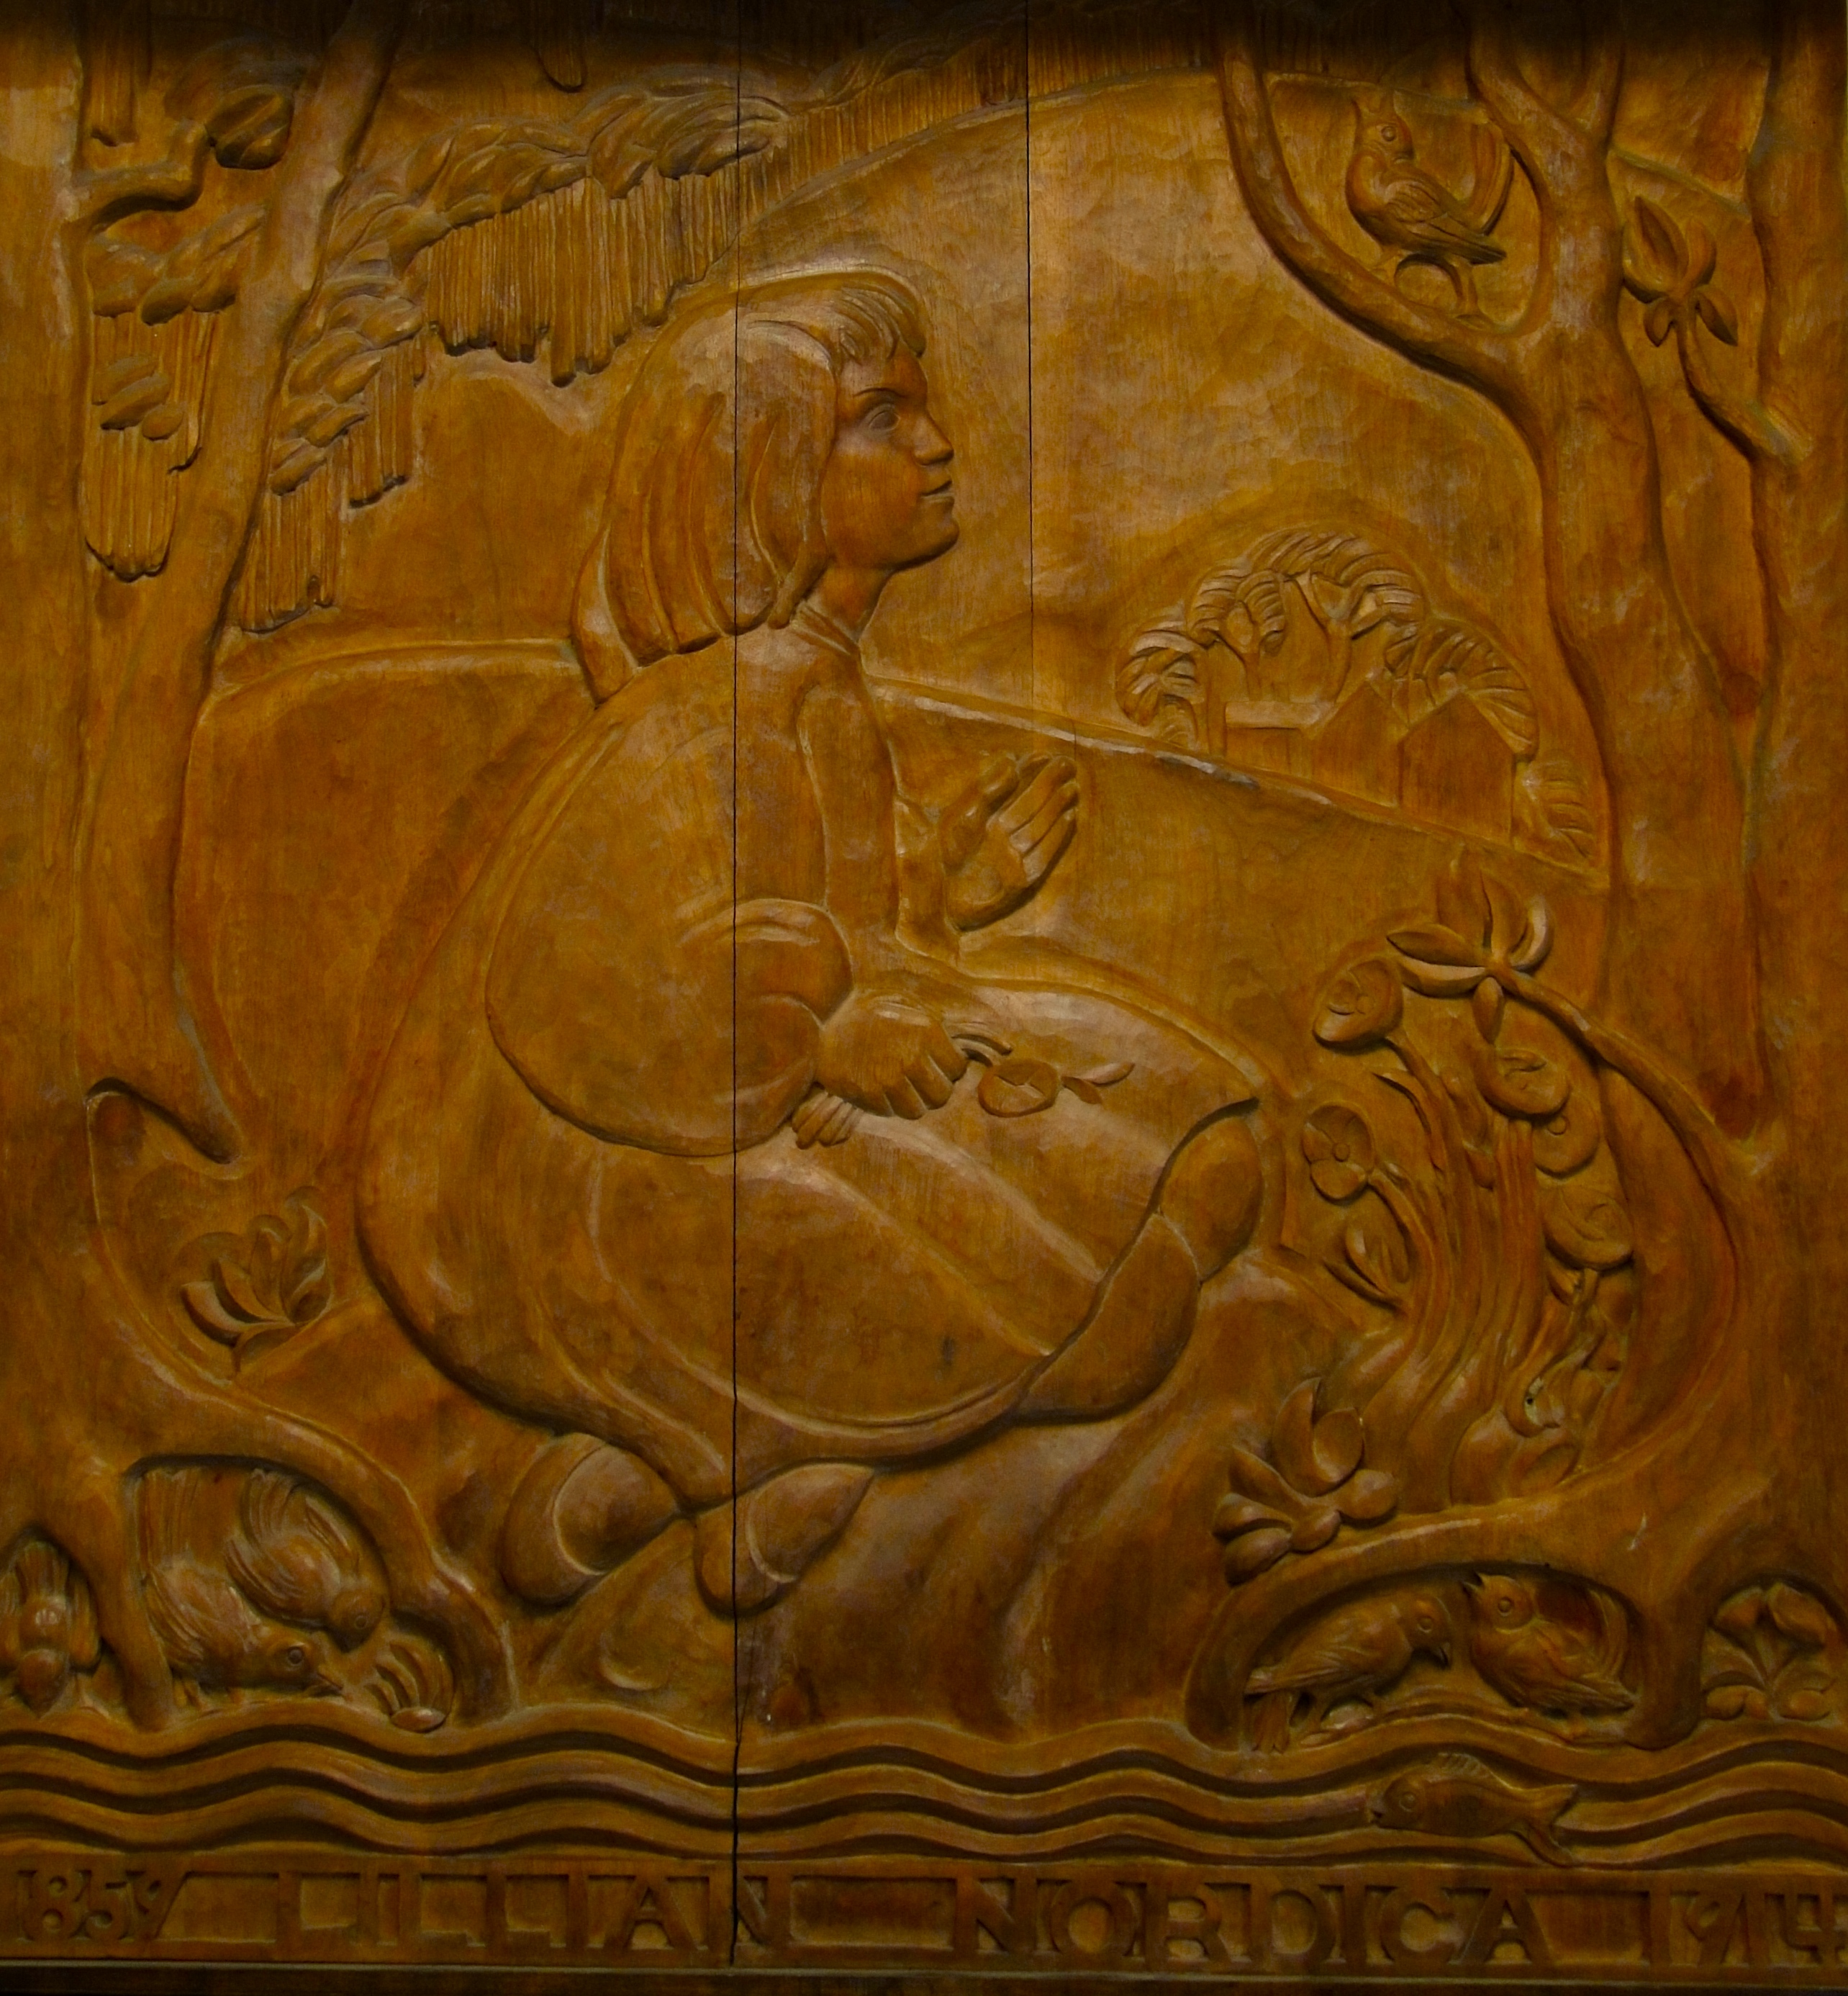 Bas relief in Farmington post office.